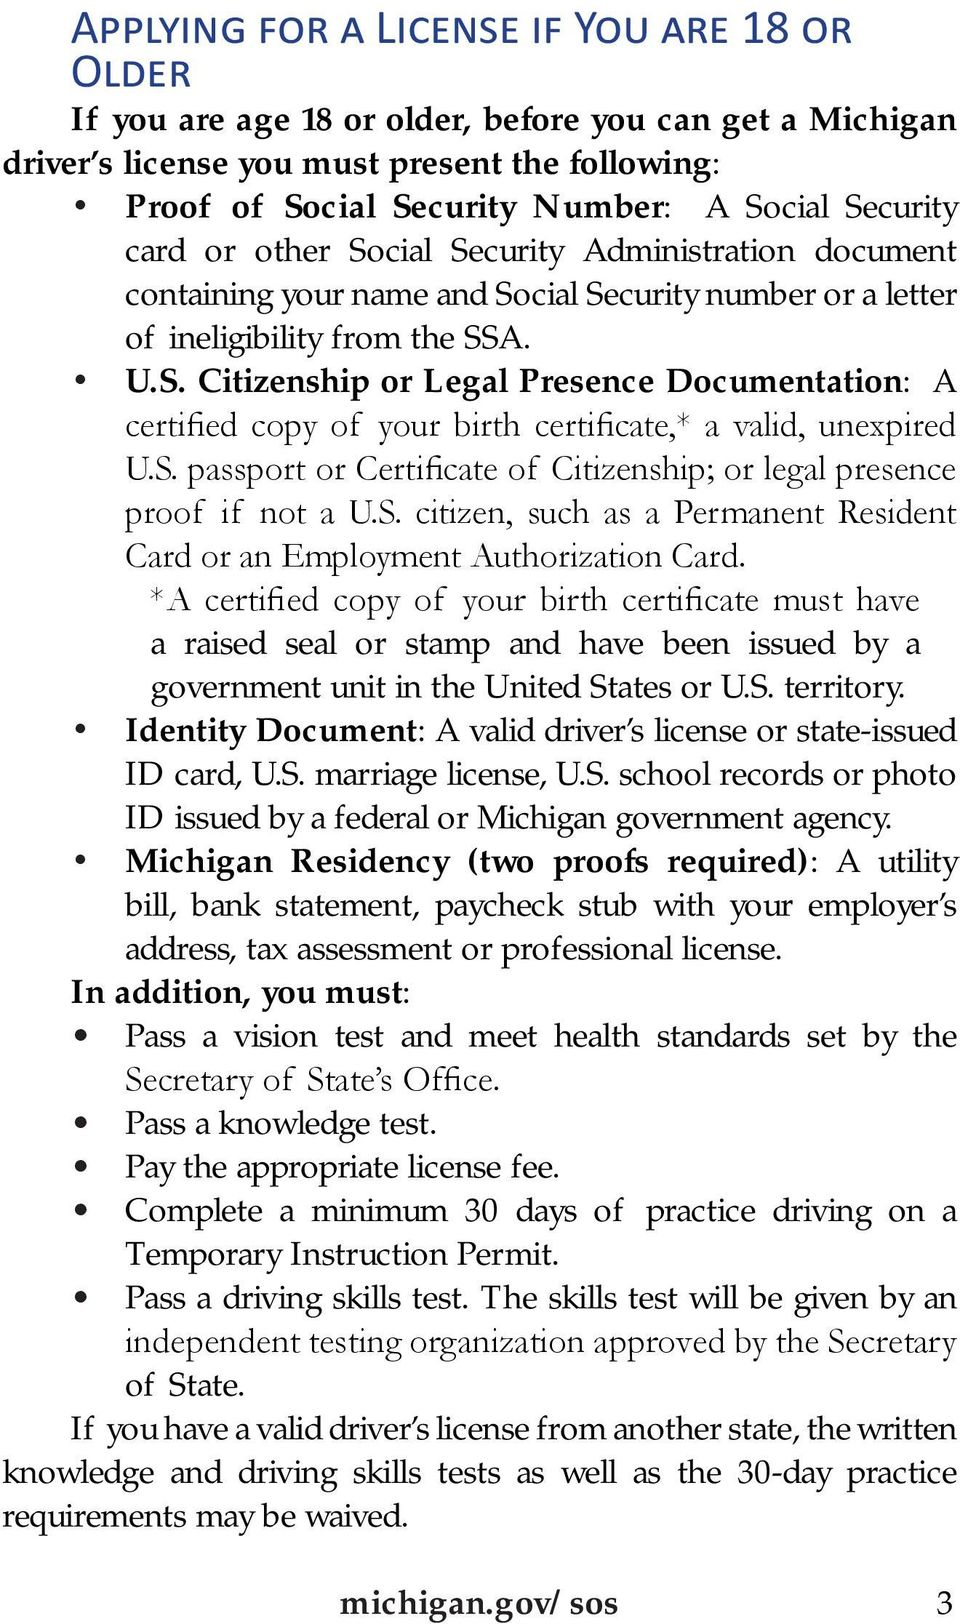 S. passport or Certificate of Citizenship; or legal presence proof if not a U.S. citizen, such as a Permanent Resident Card or an Employment Authorization Card.